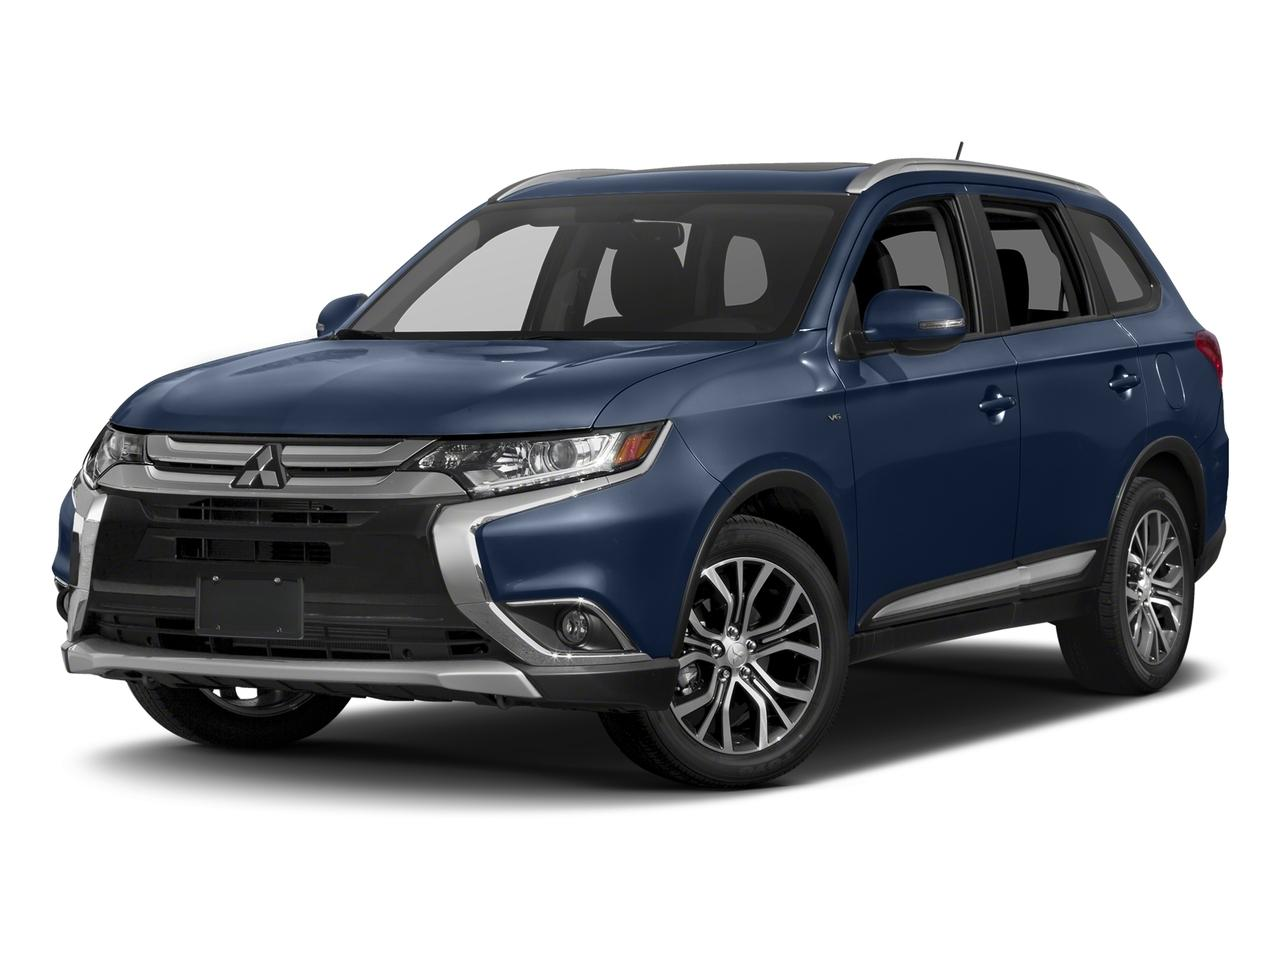 2018 Mitsubishi Outlander Vehicle Photo in Peoria, IL 61615